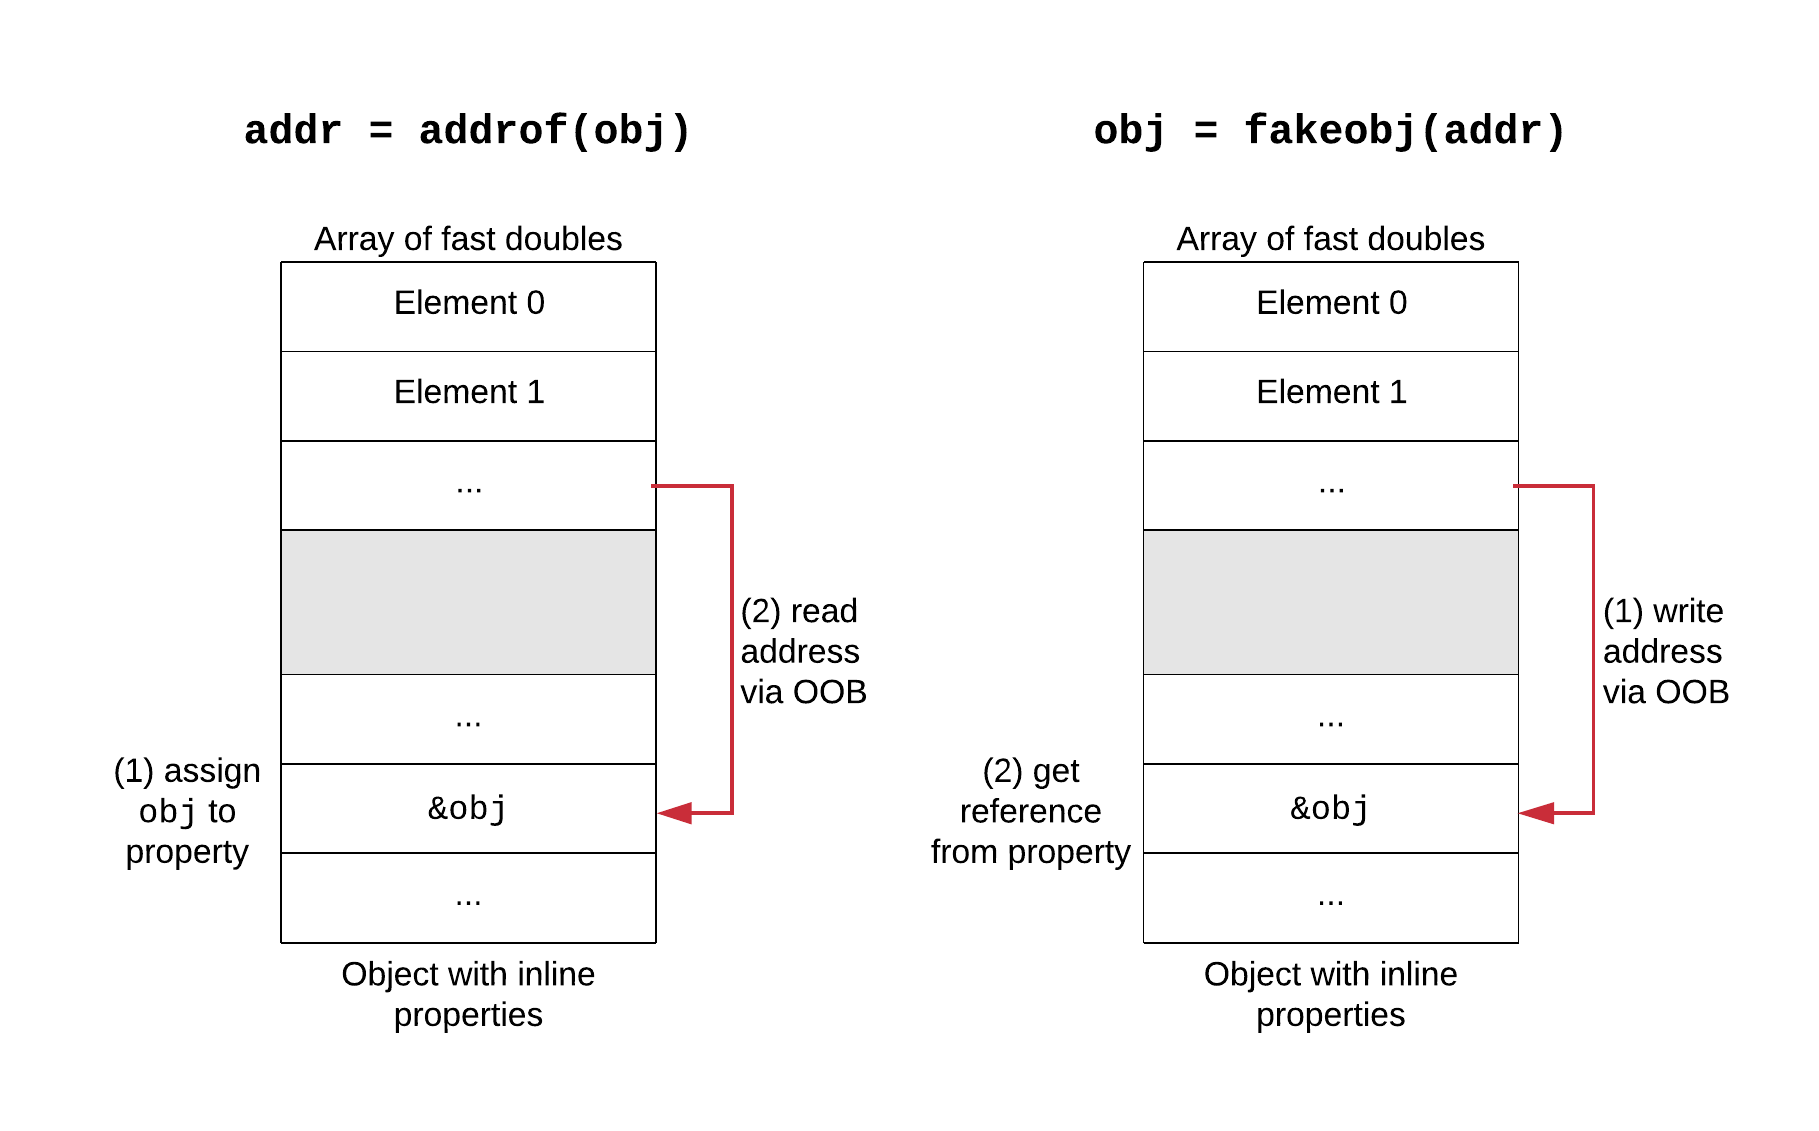 Addrof and fakeobj primitives